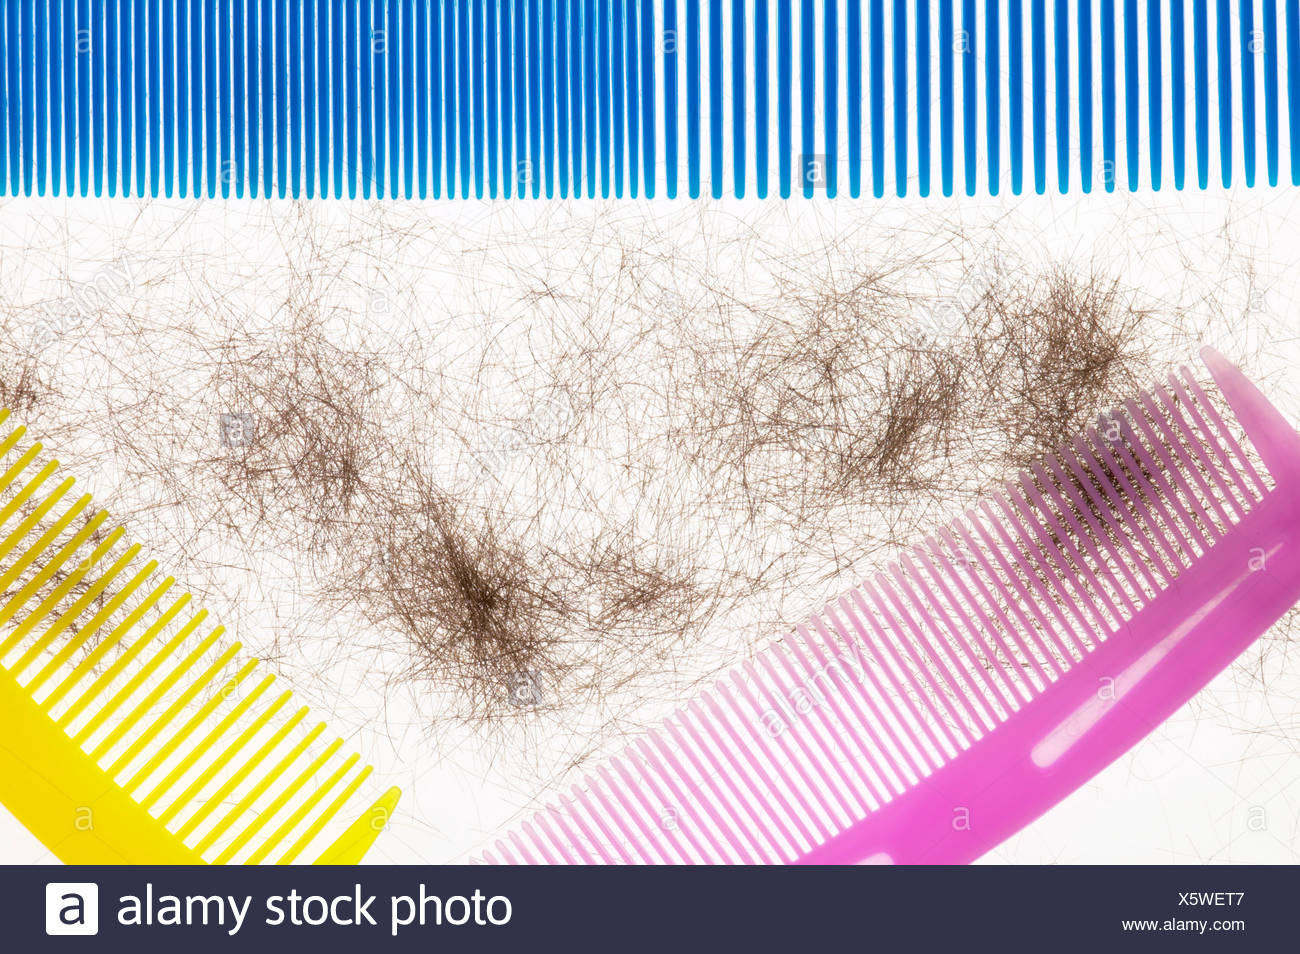 Plastic combs and hair clippings, elevated view - Stock Image